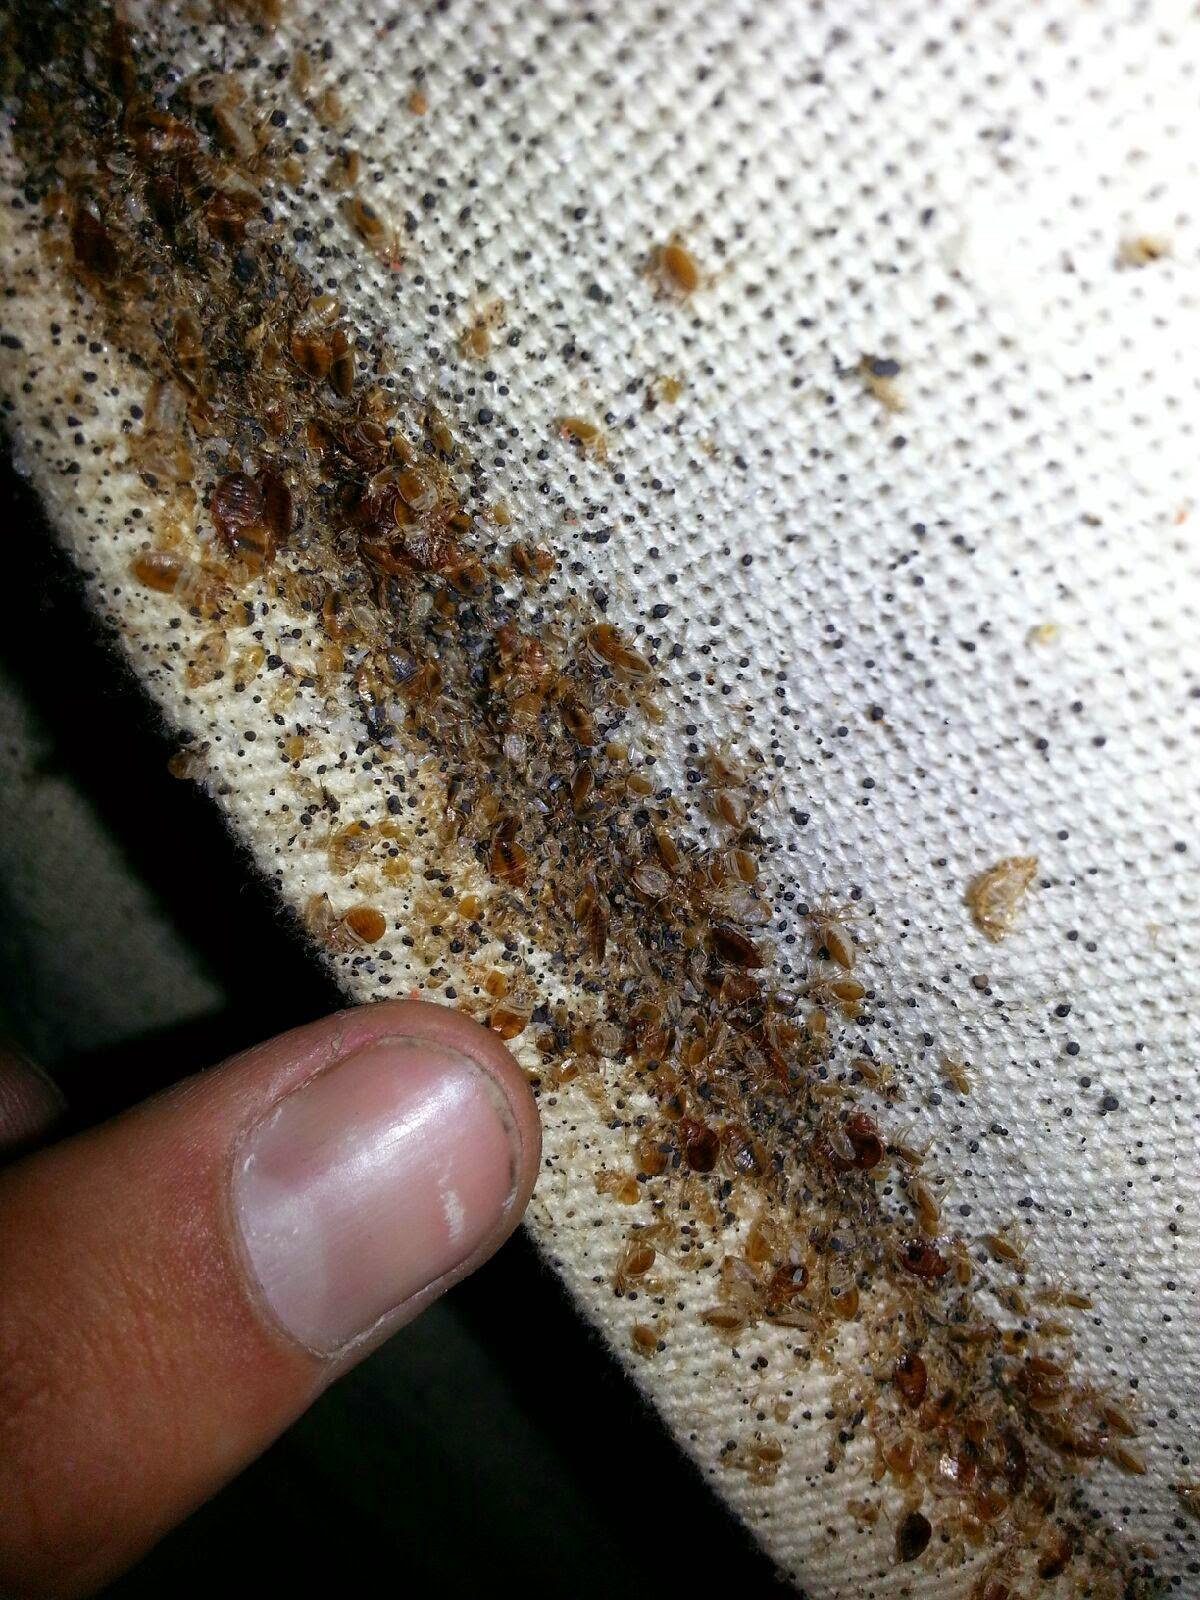 Great Bed Bug Infestations Are On The Rise Every Day. They Were Pretty Much  Eliminated In The U.S. Back In The Late 1950u0027s With DDT As The Main  Firepower.